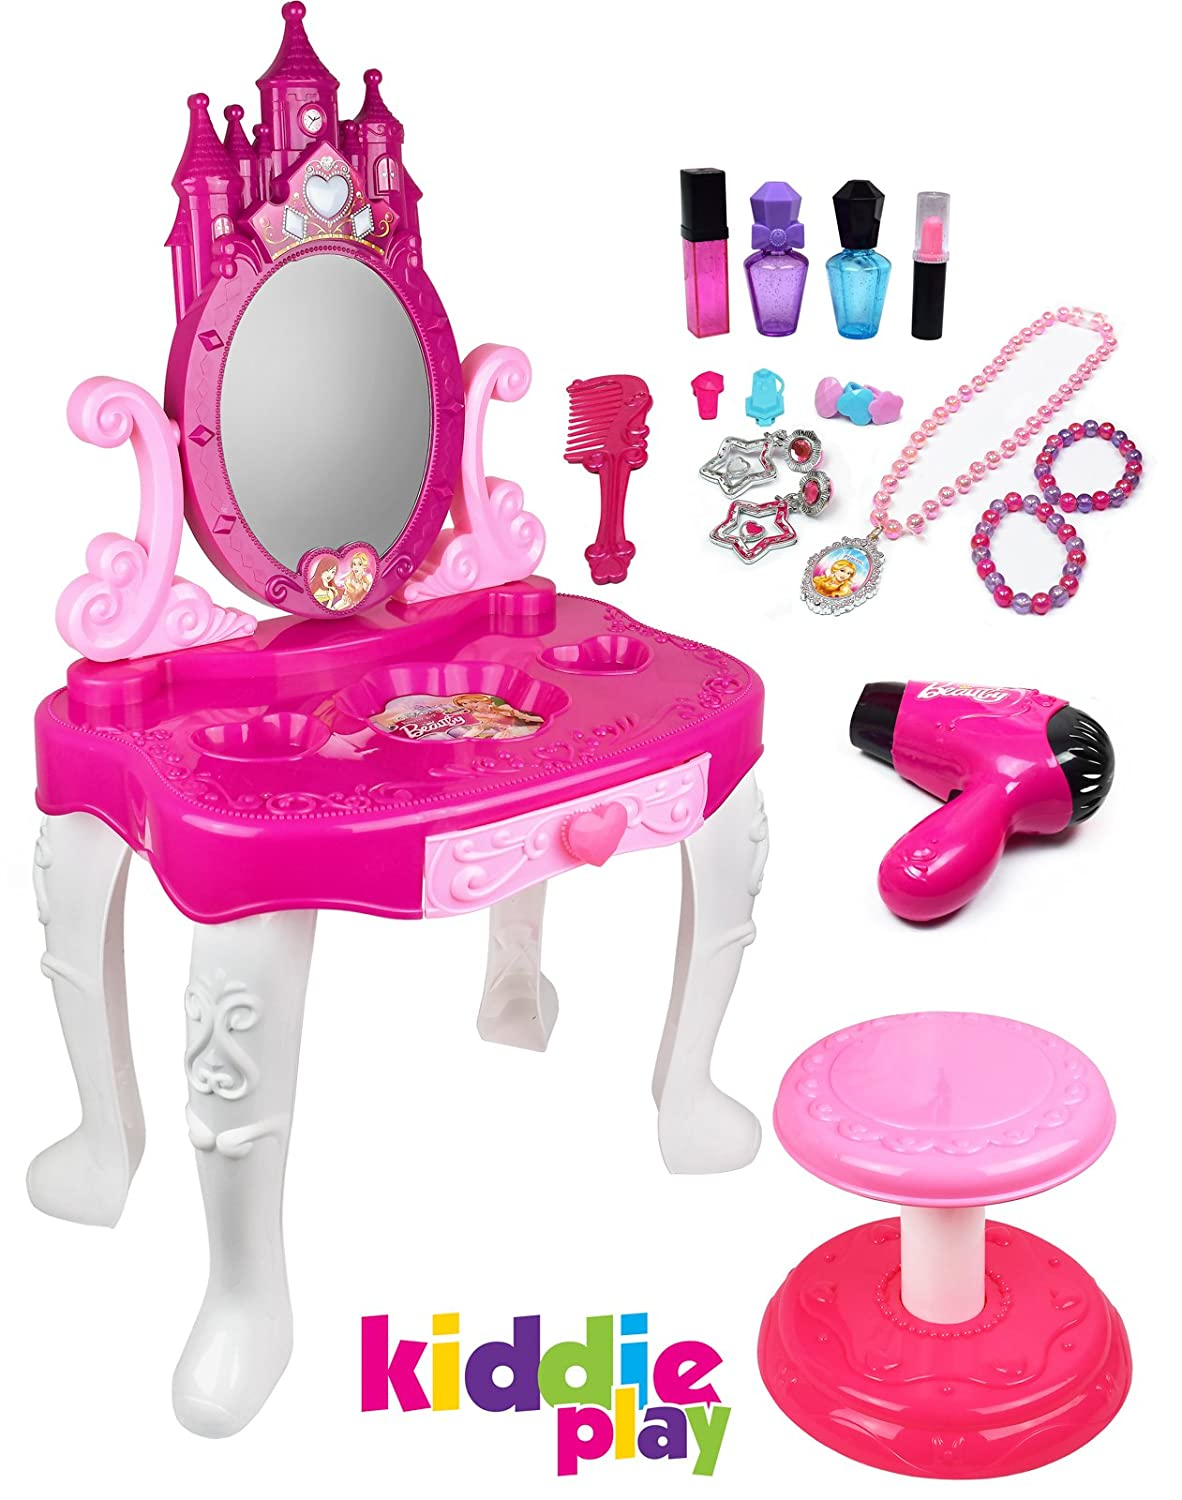 Kiddie Play Little Princess Kids Vanity Table And Chair